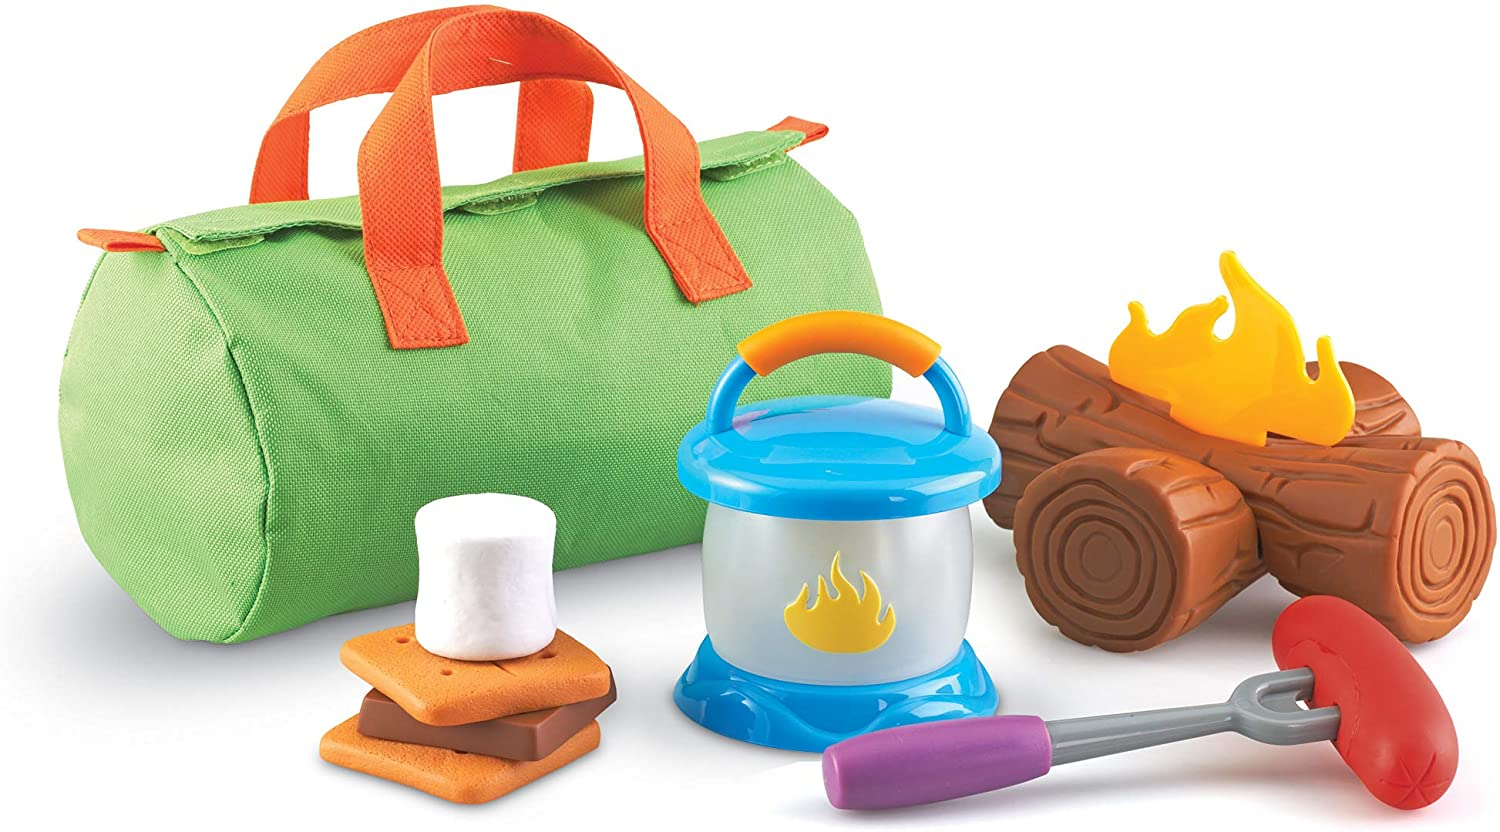 Learning Resources New Sprouts Camp Out!, Imaginative Play, Camping Toy, Outdoor Toys, 11 Pieces, Ages 2+: Toys & Games